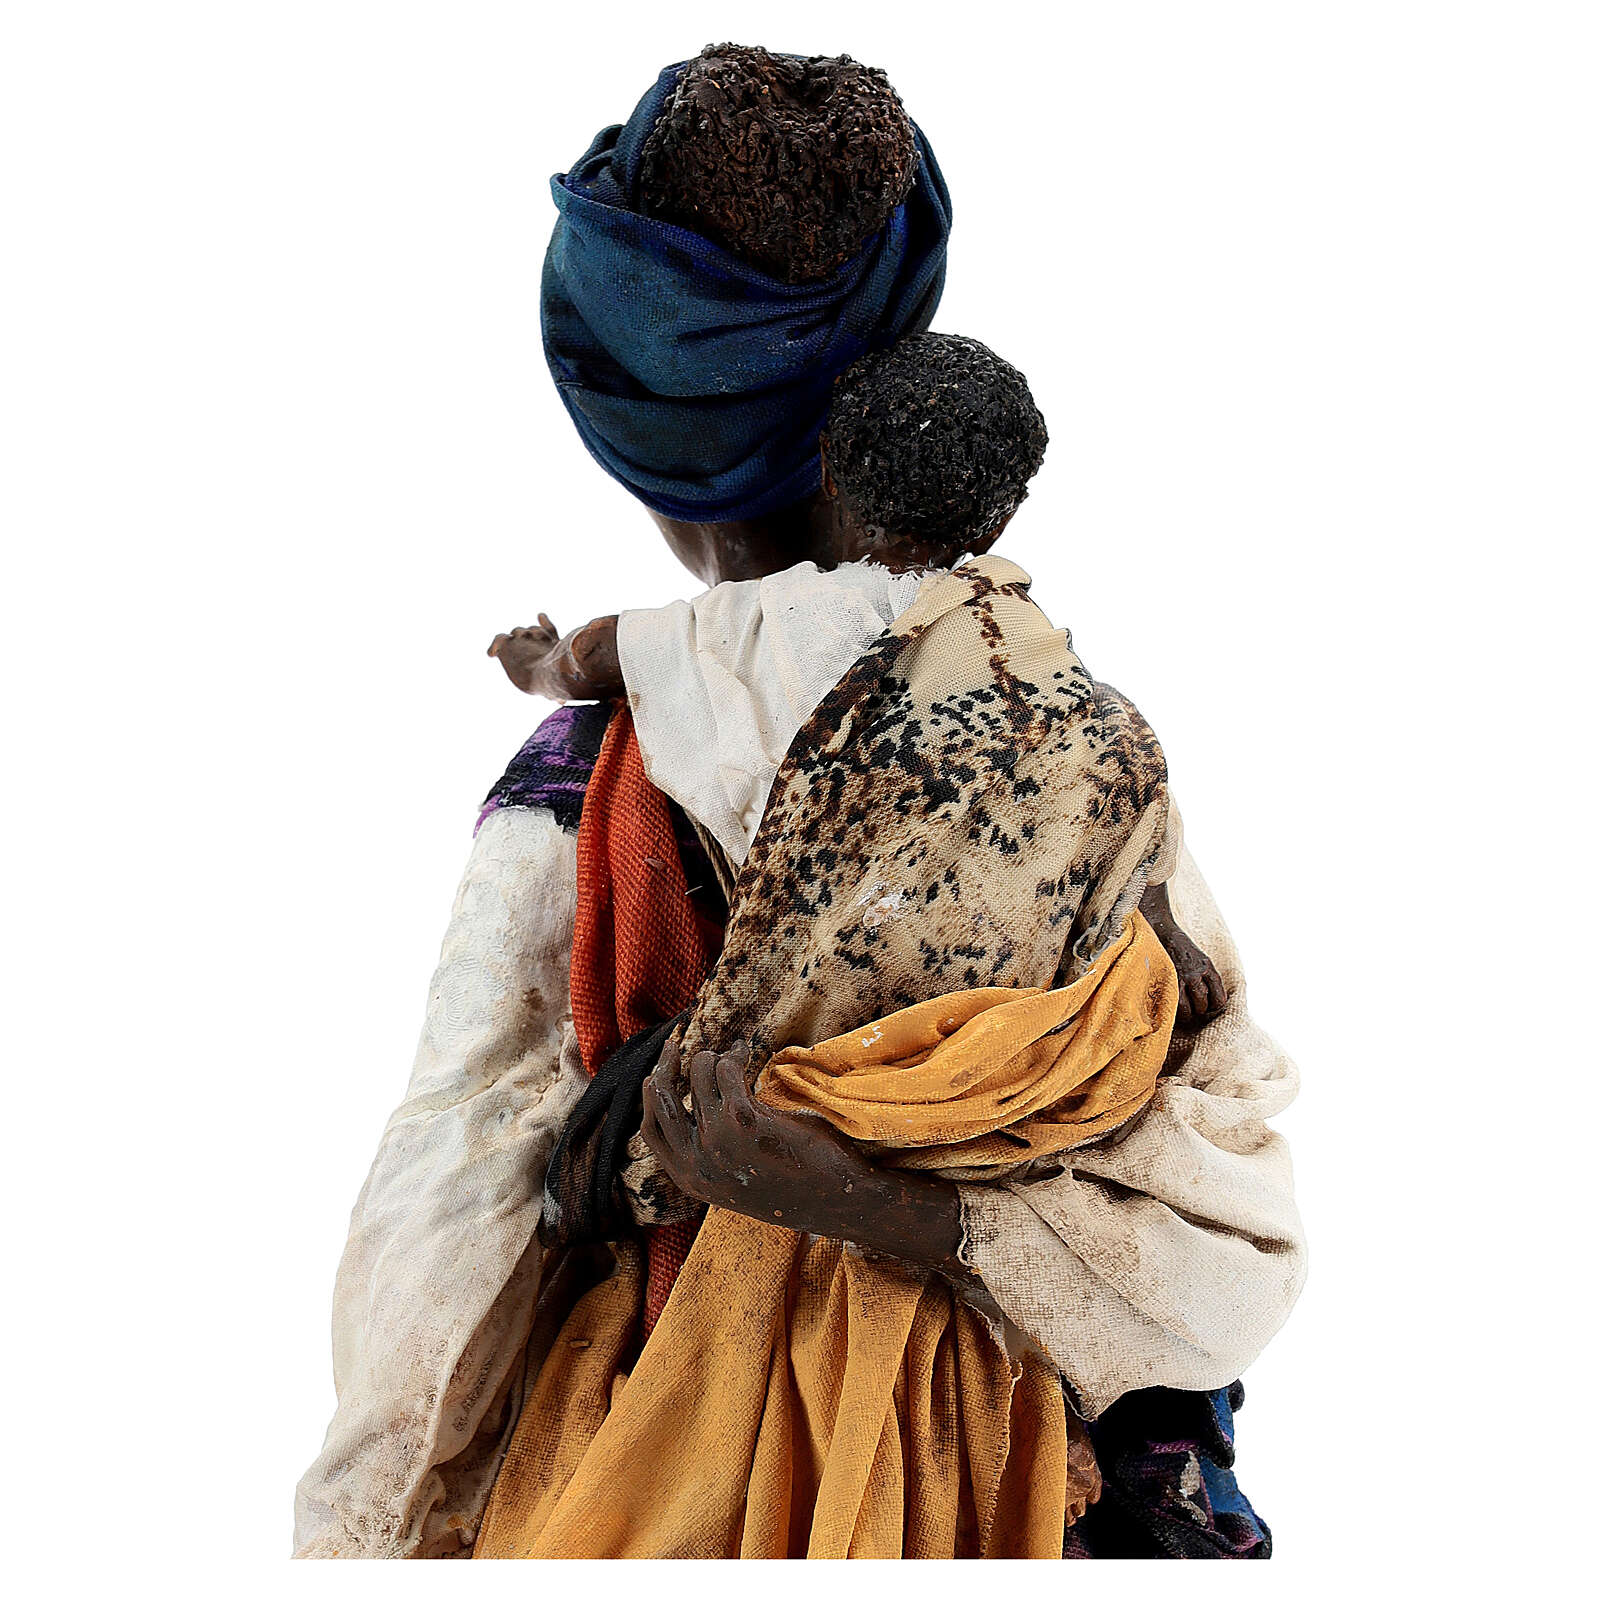 Moor woman with child in hand, 30 cm Tripi 4